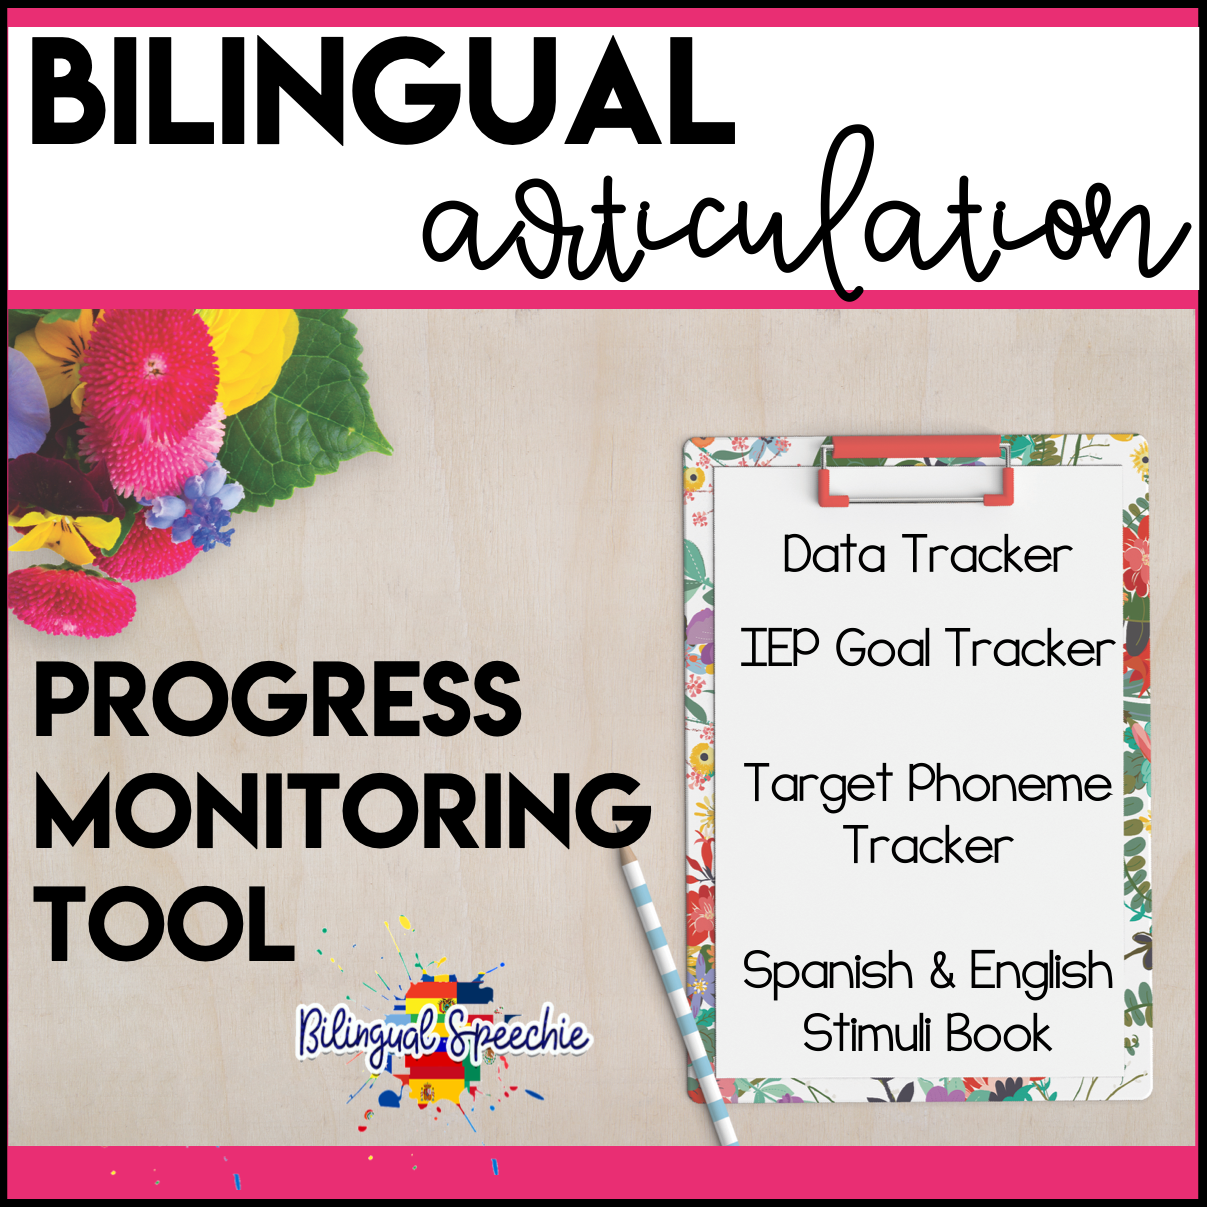 Bilingual Articulation Progress Monitoring Tool